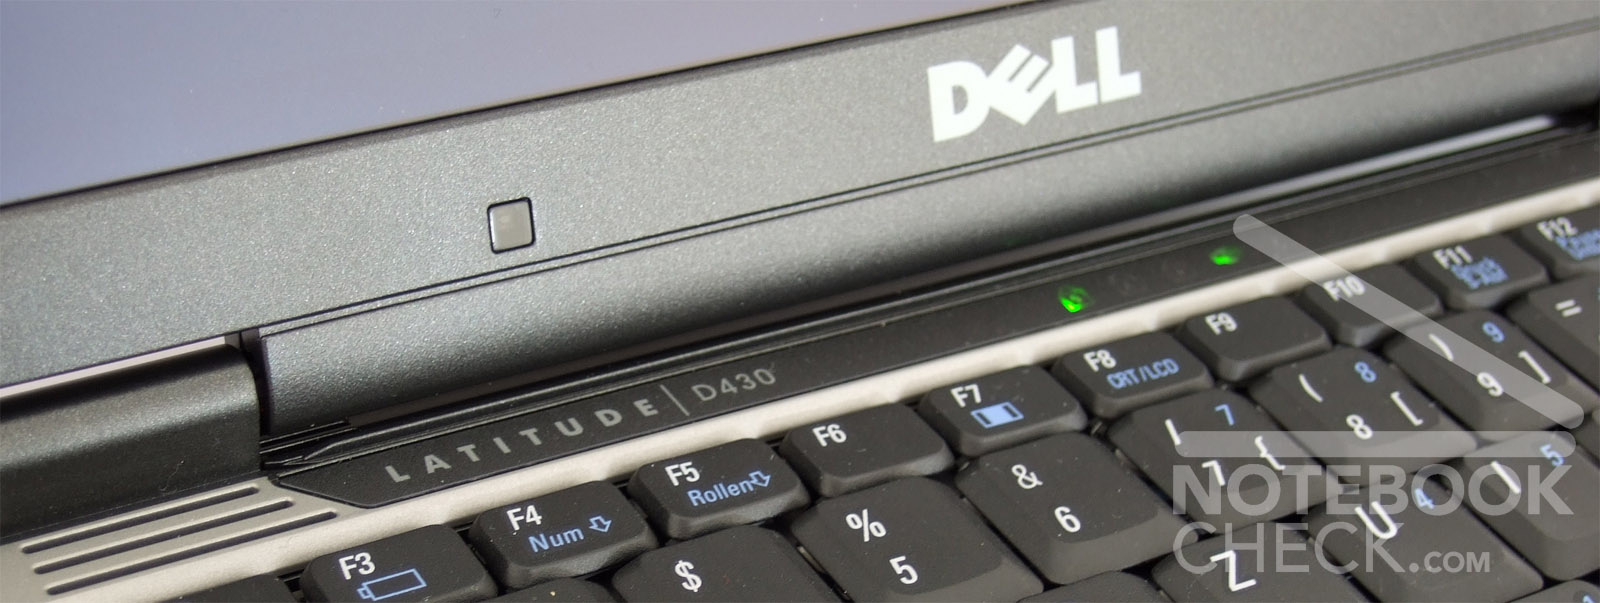 Dell Latitude D430 Wireless (US) WLAN Card Drivers